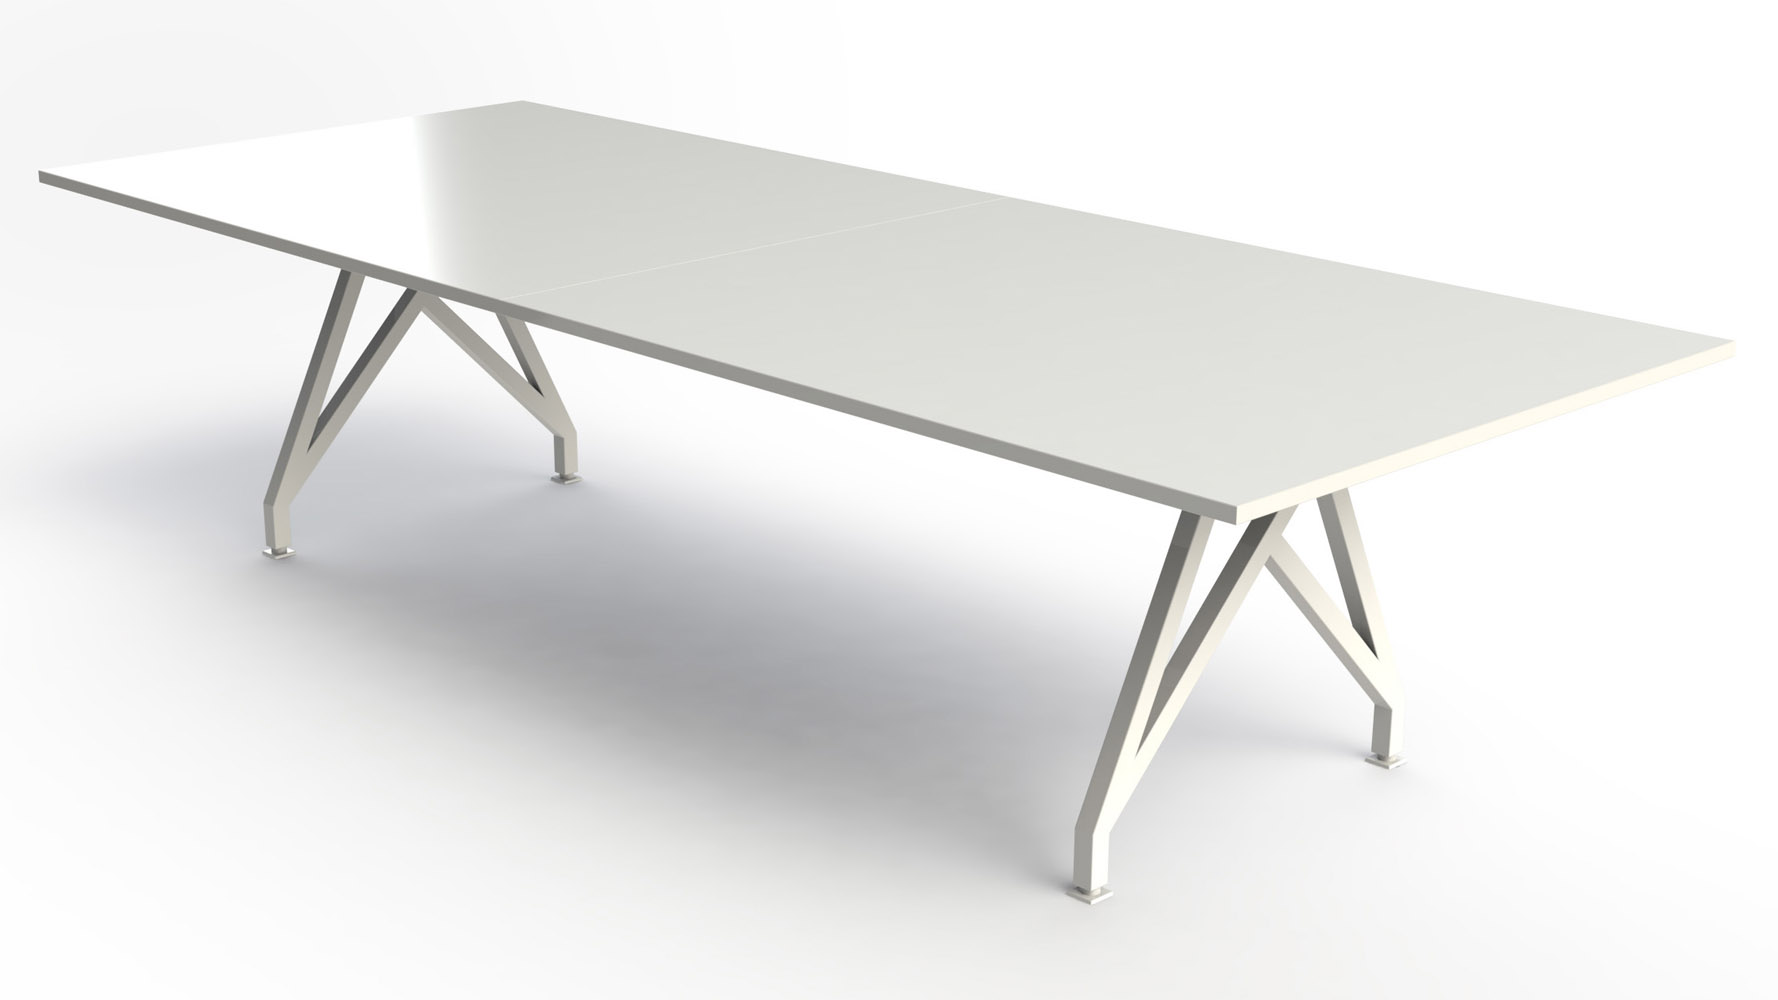 THINK TANK Conference Table Ft Zuri Furniture - Large white conference table